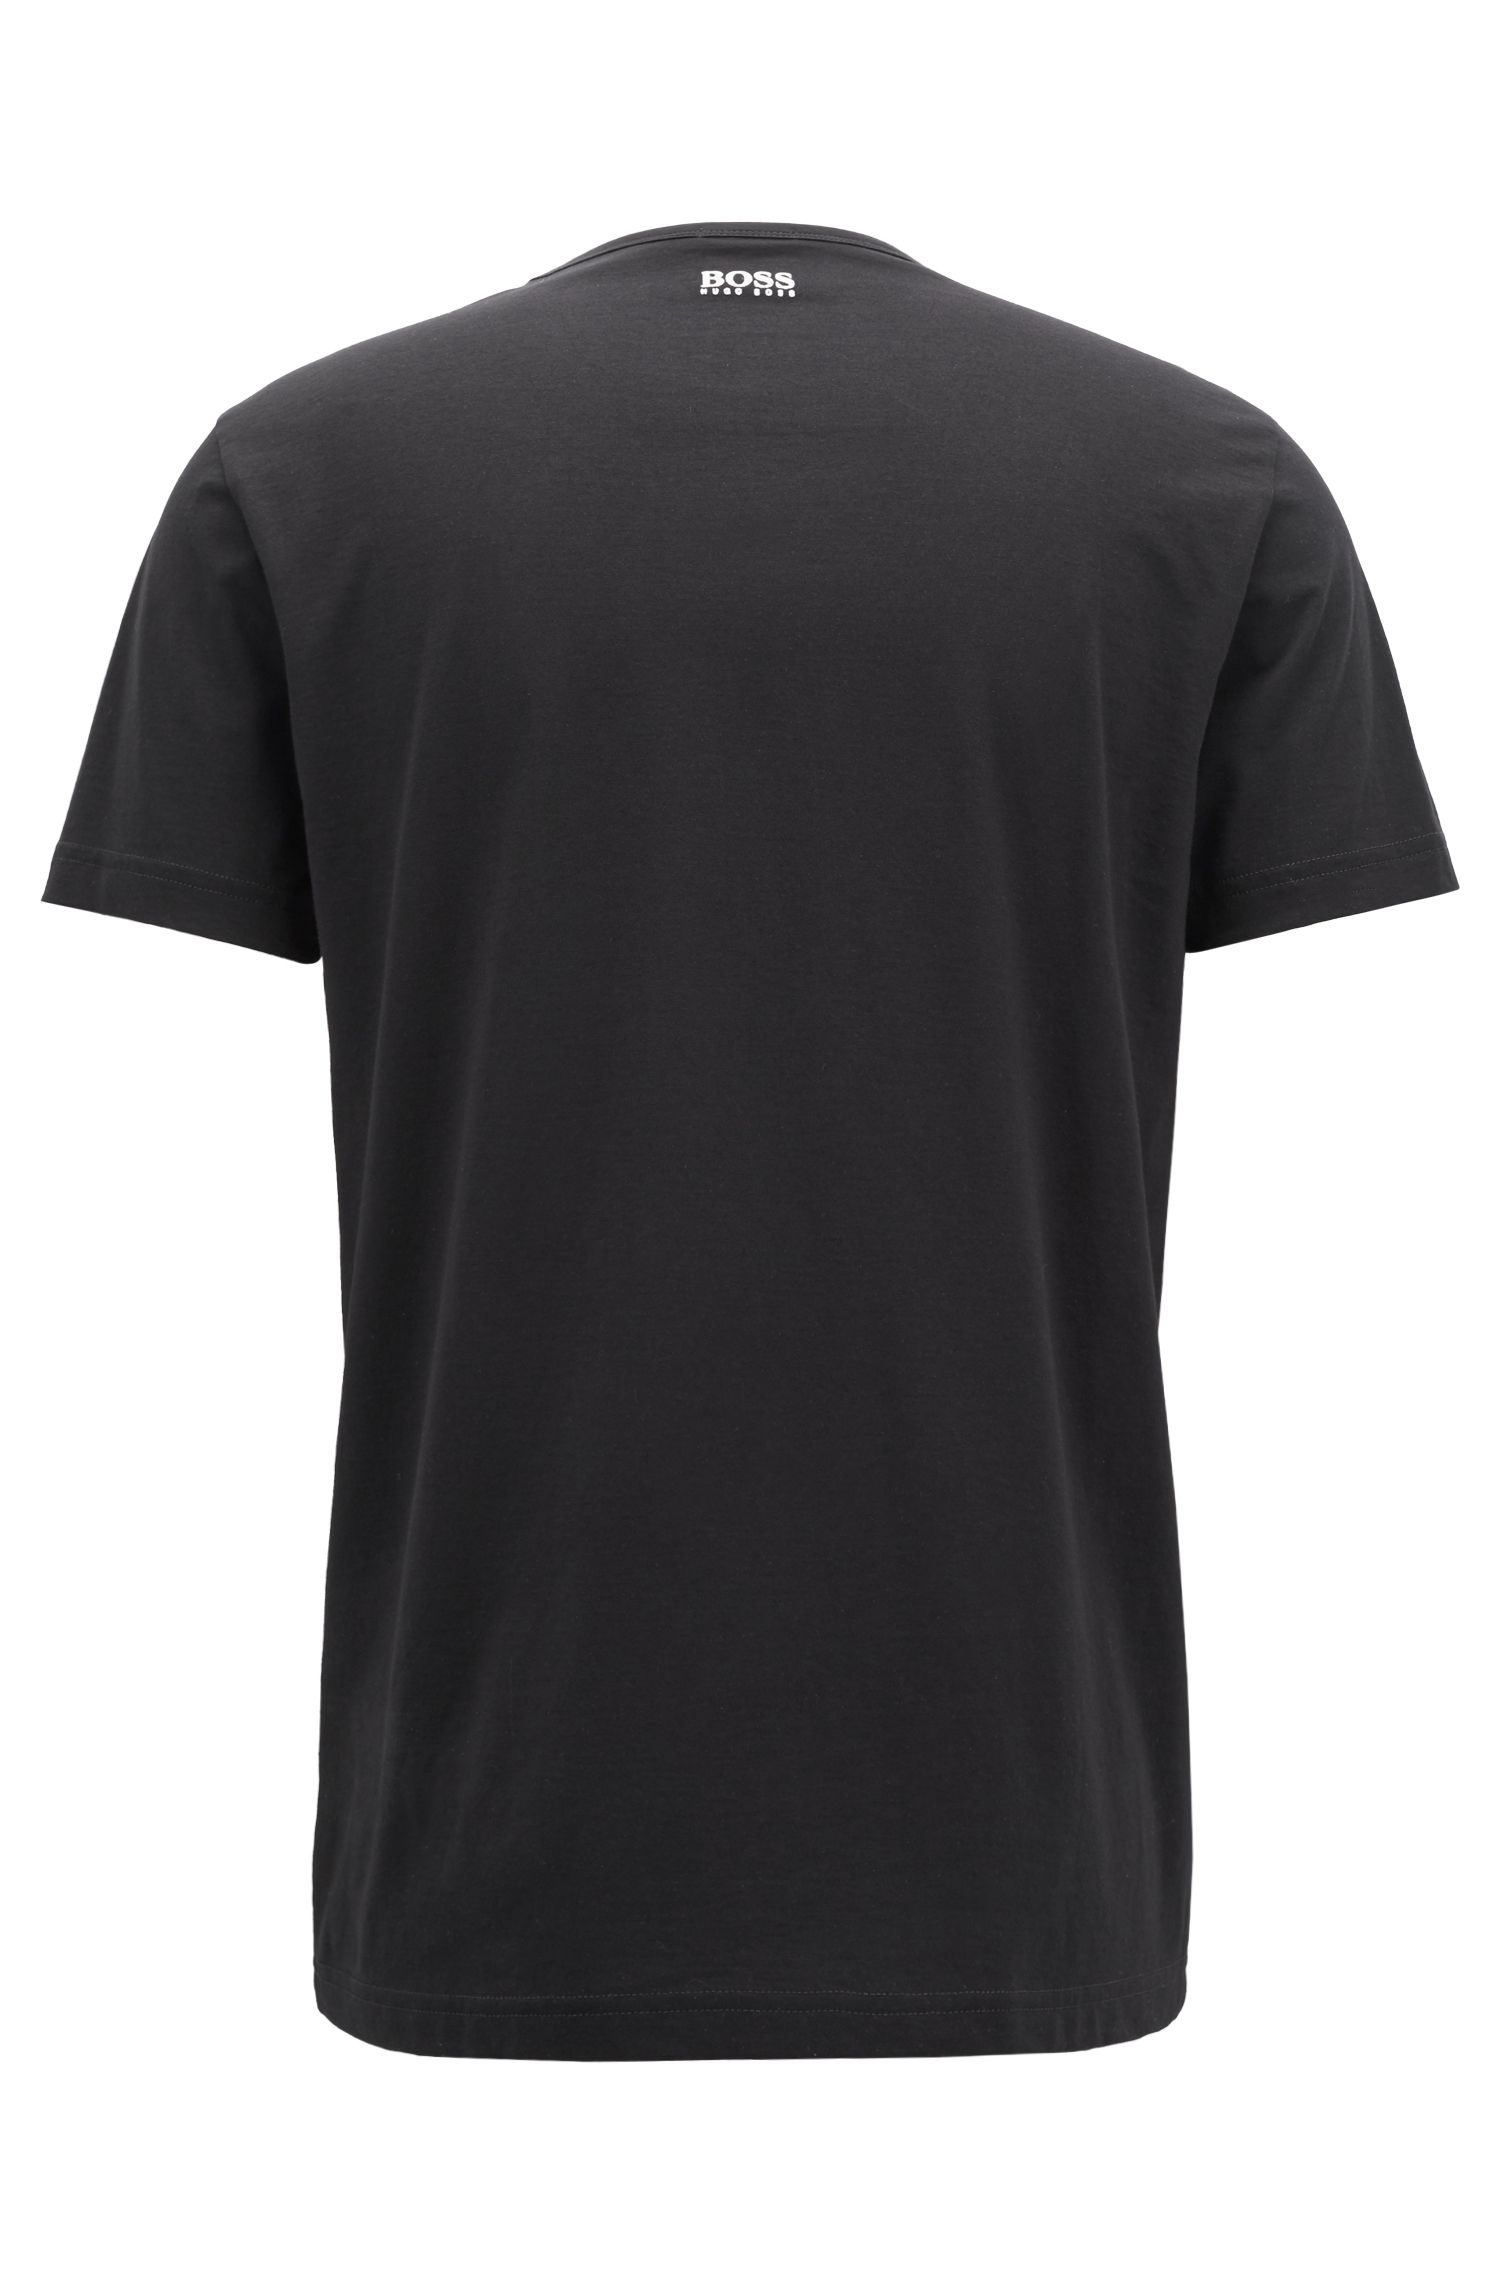 Crew-neck T-shirt in cotton with flock-print logo, Black